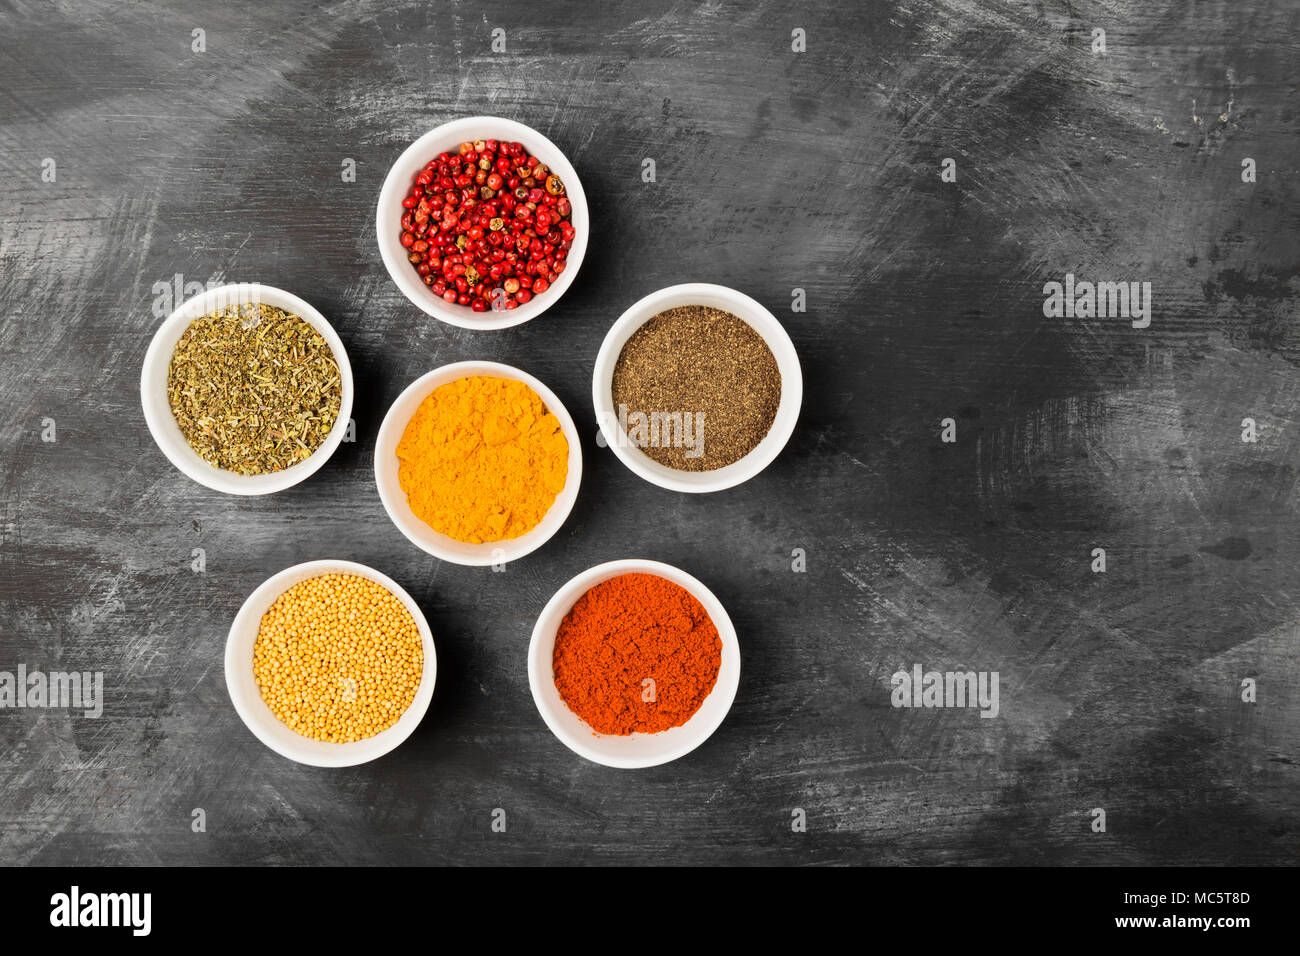 Various spices in bowls on black background. Top view, copy space. Food background - Stock Image